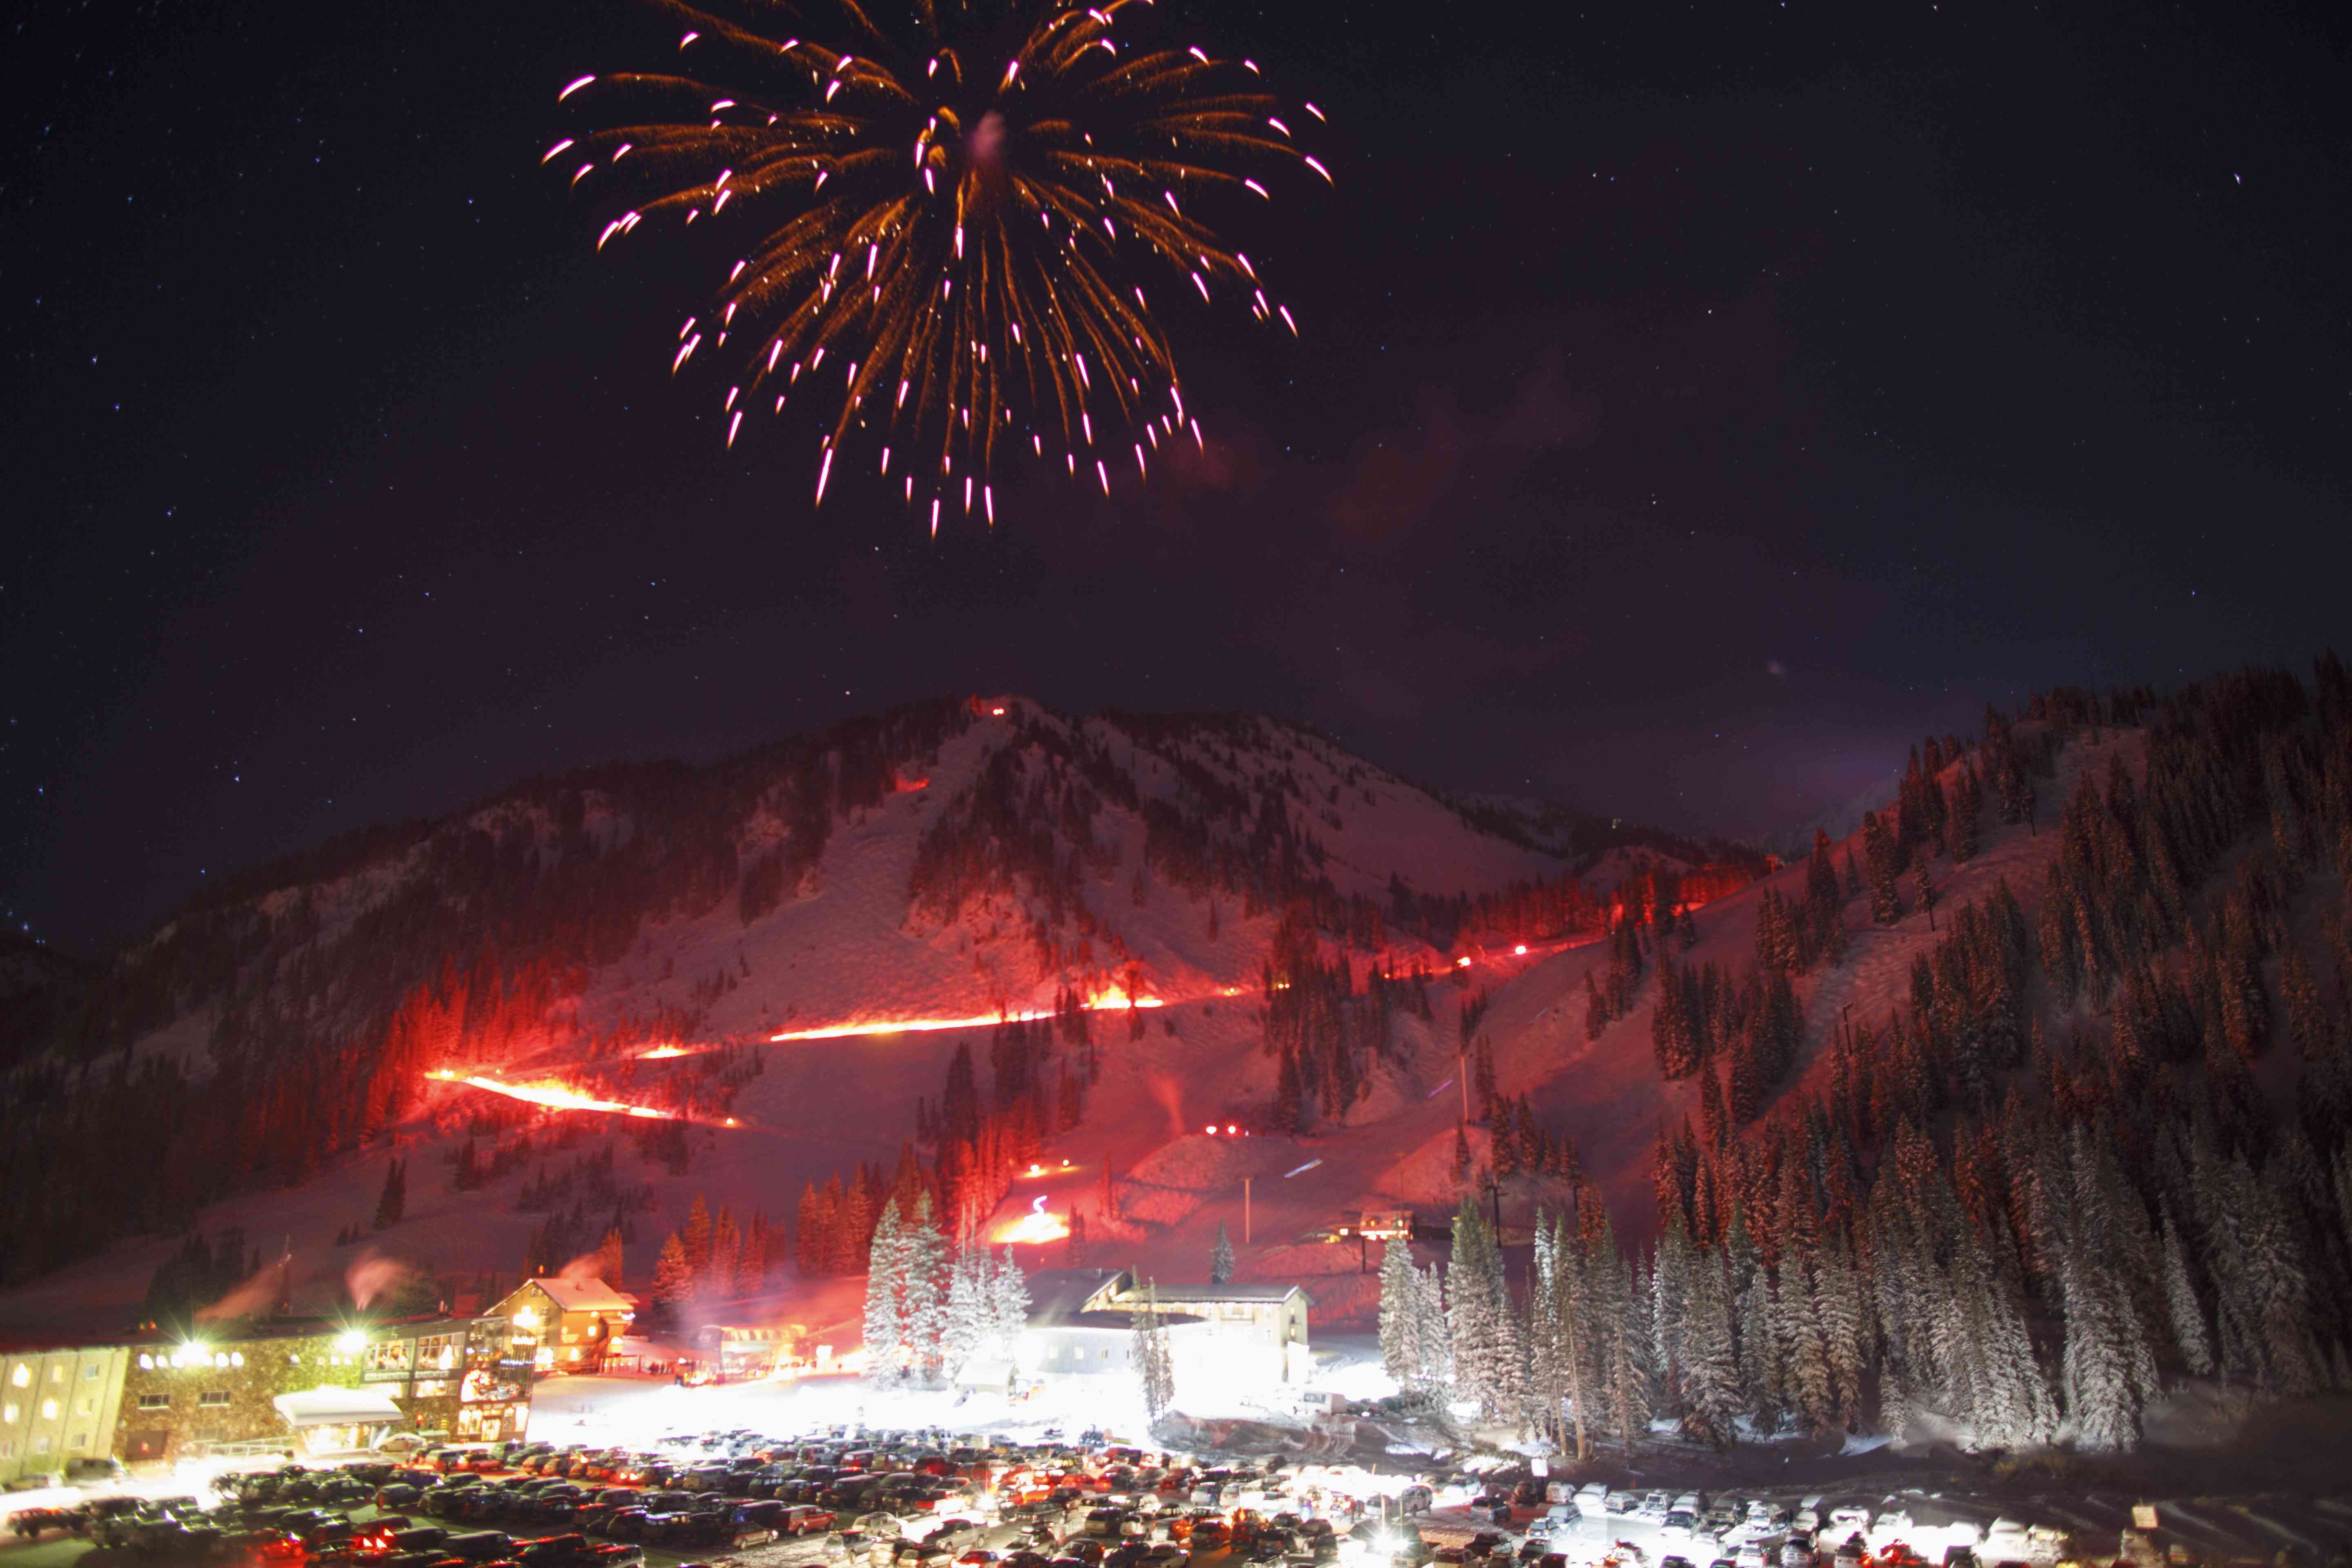 Torch Light Parade down mountain on New Year's Eve